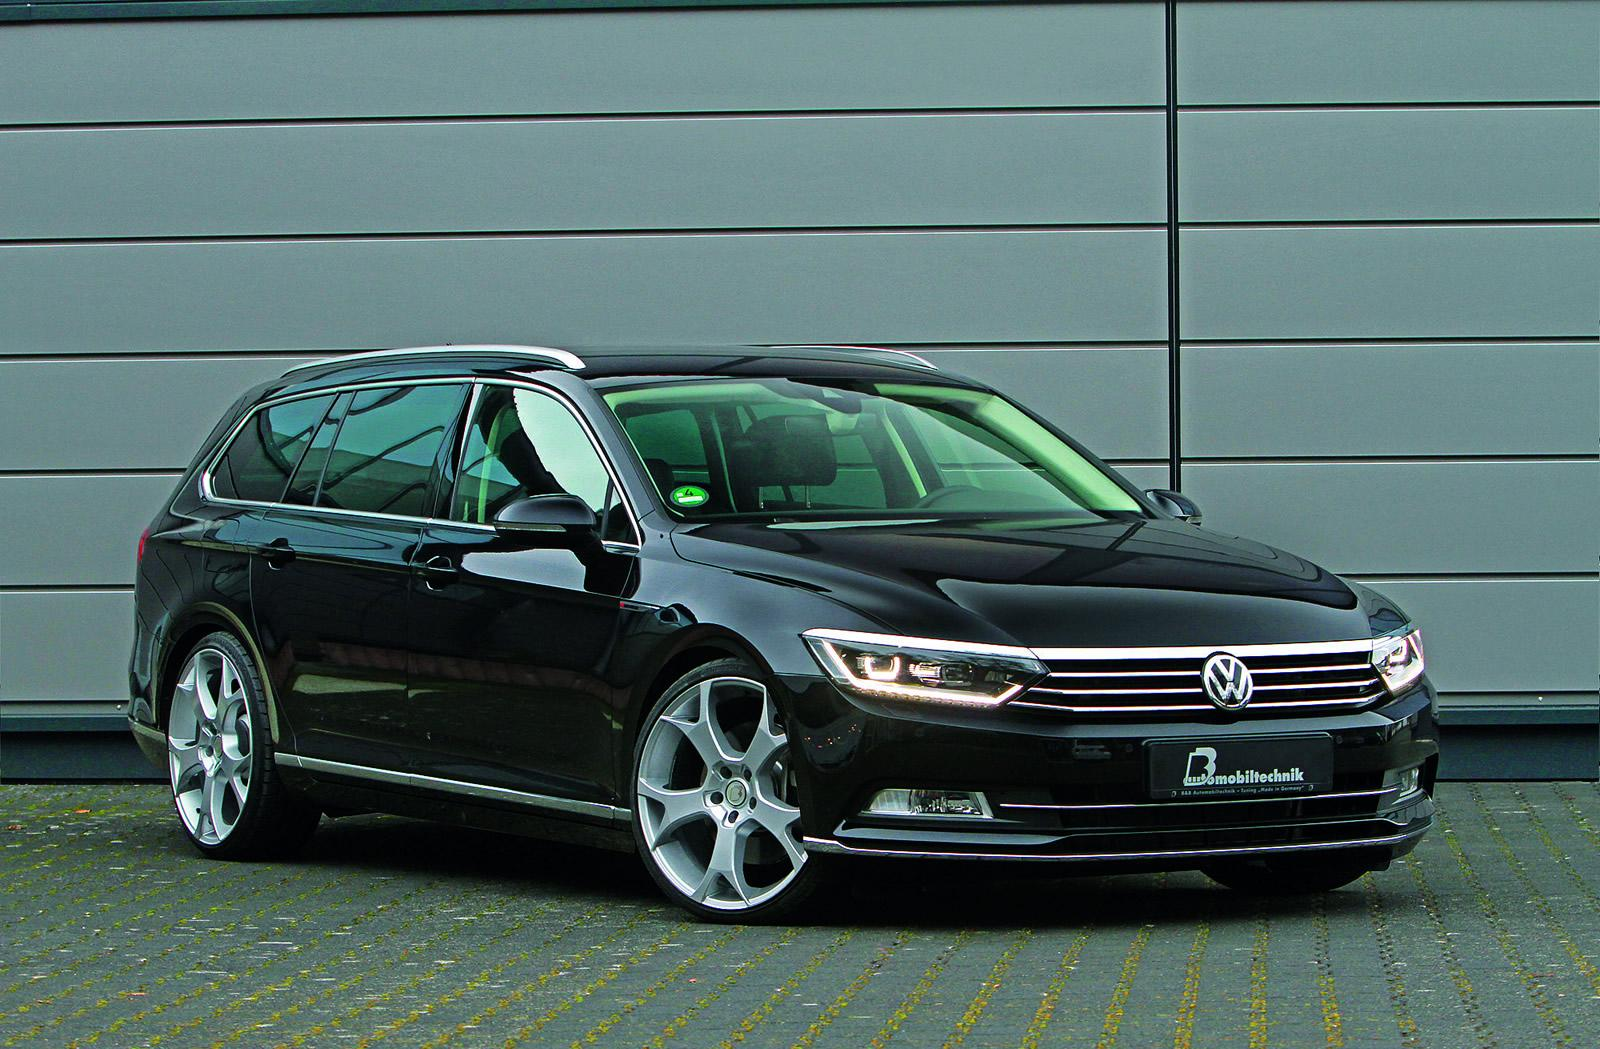 2015 volkswagen passat 2 0 bitdi tuned to 300 hp b8. Black Bedroom Furniture Sets. Home Design Ideas